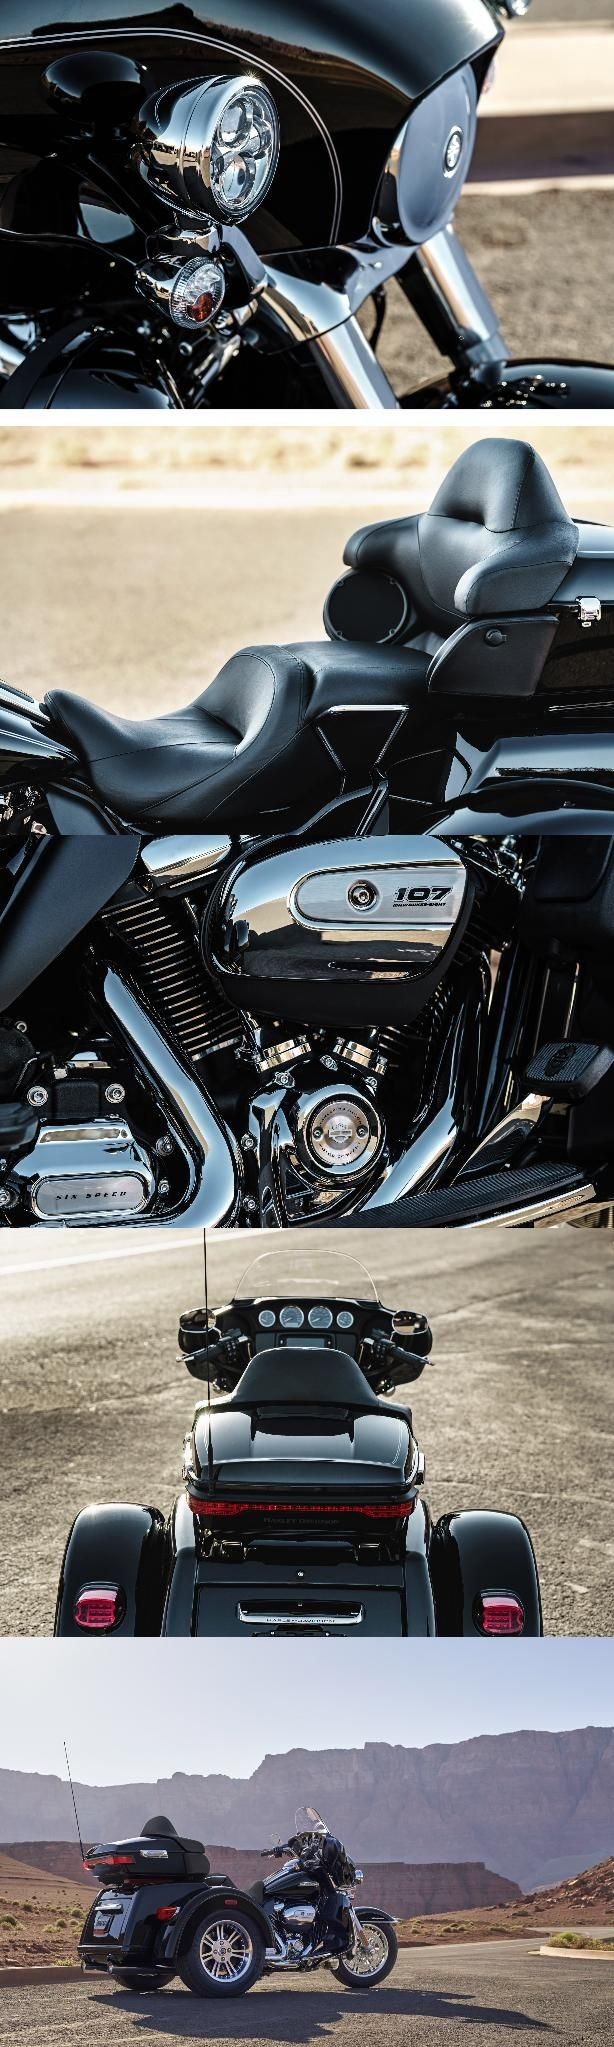 How much motorcycle can you fit on three wheels? One look at the Tri Glide Ultra & you'll have your answer. | 2017 Harley-Davidson Tri Glide Ultra